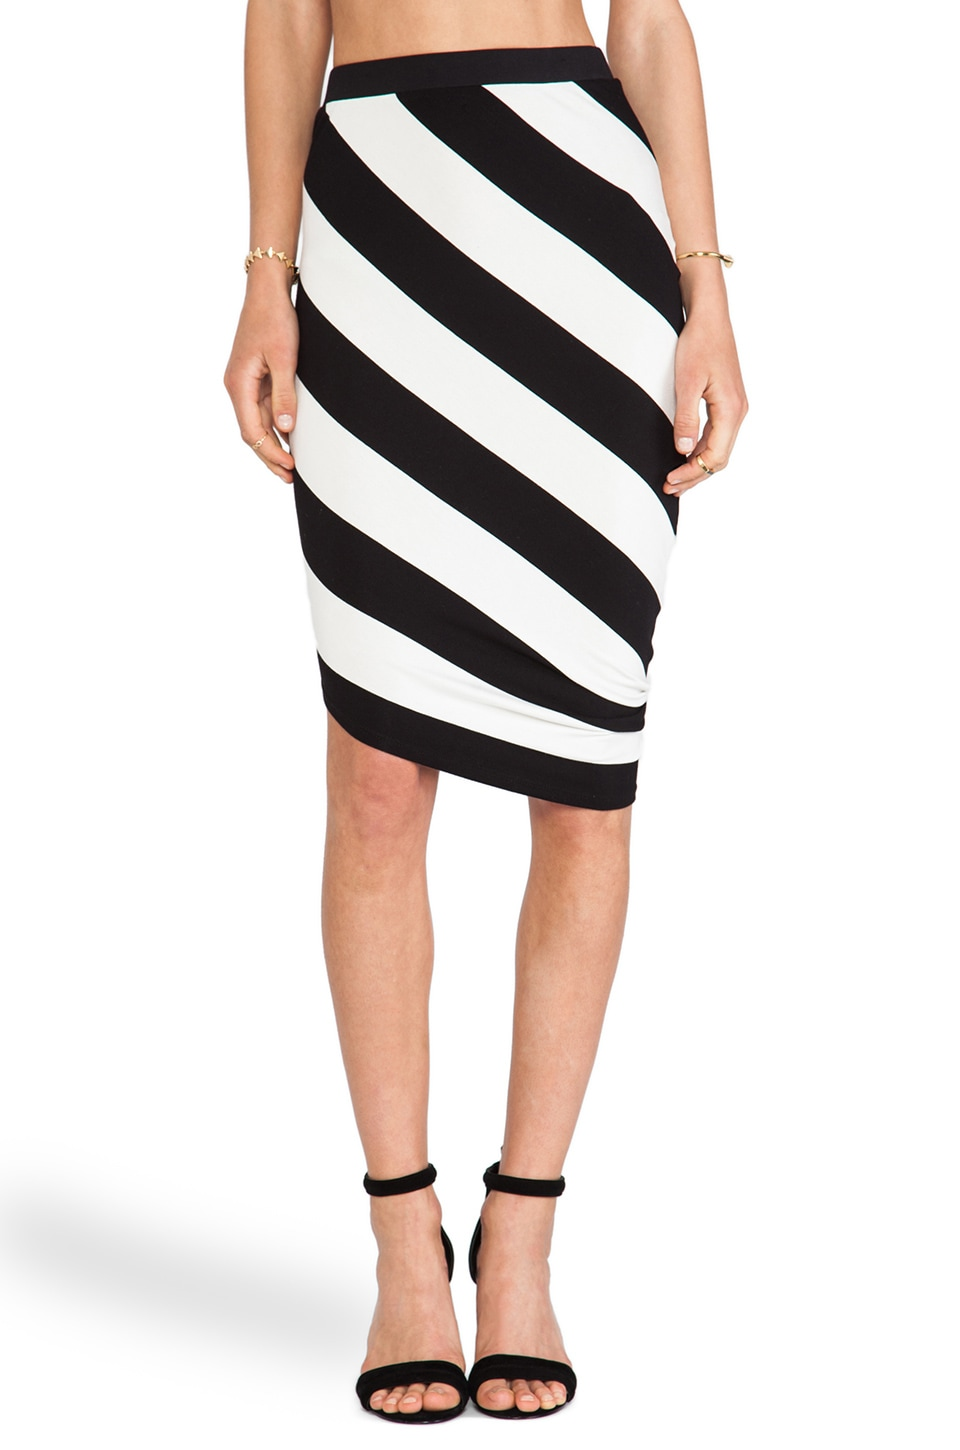 sen Jax Skirt in Black & White Stripe